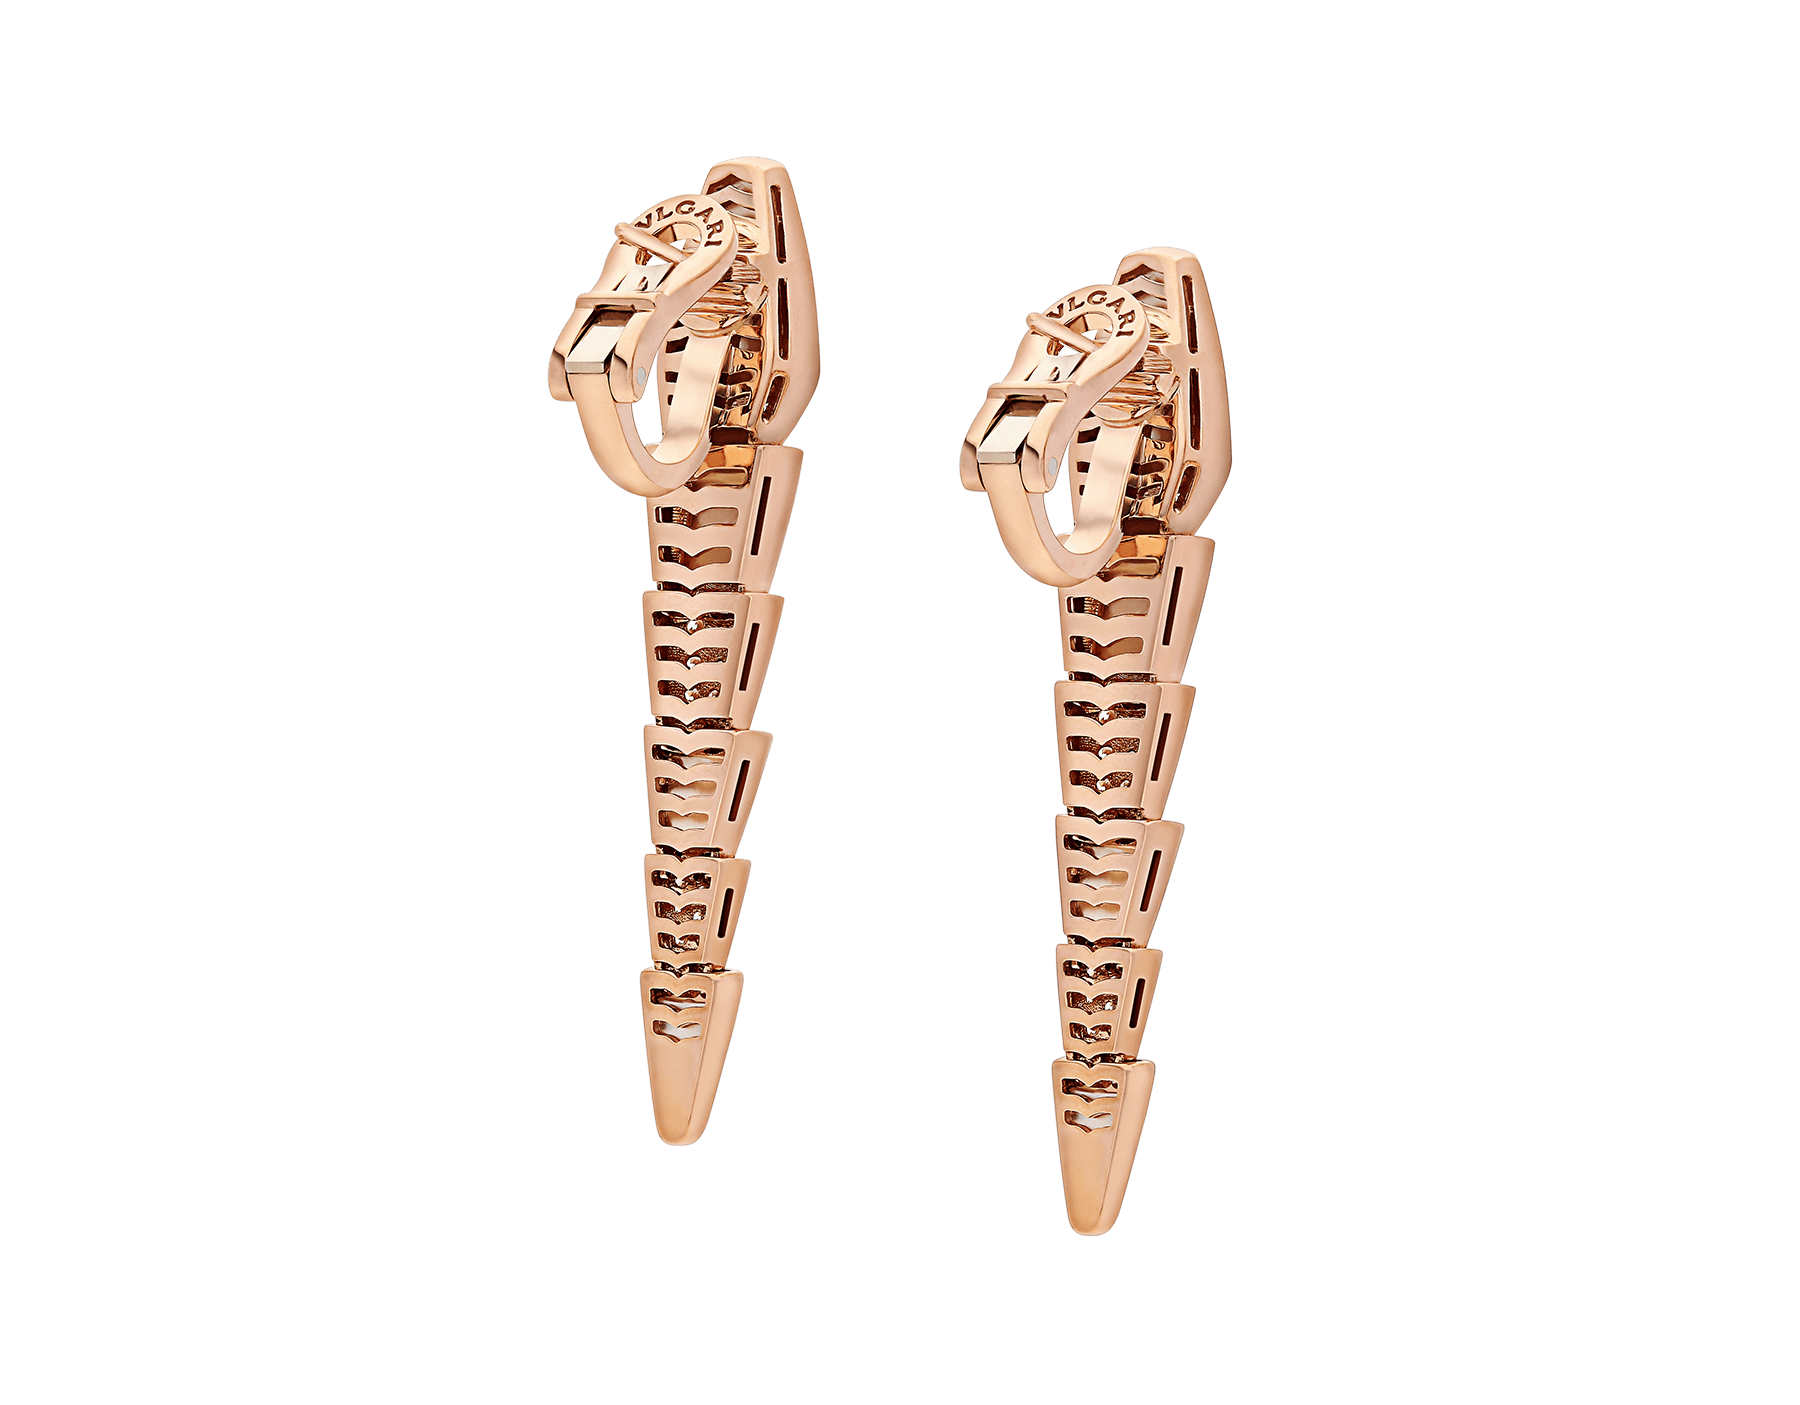 Serpenti earrings in 18 kt rose-gold set with mother-of-pearl elements and pavé diamonds. 350678 image 3